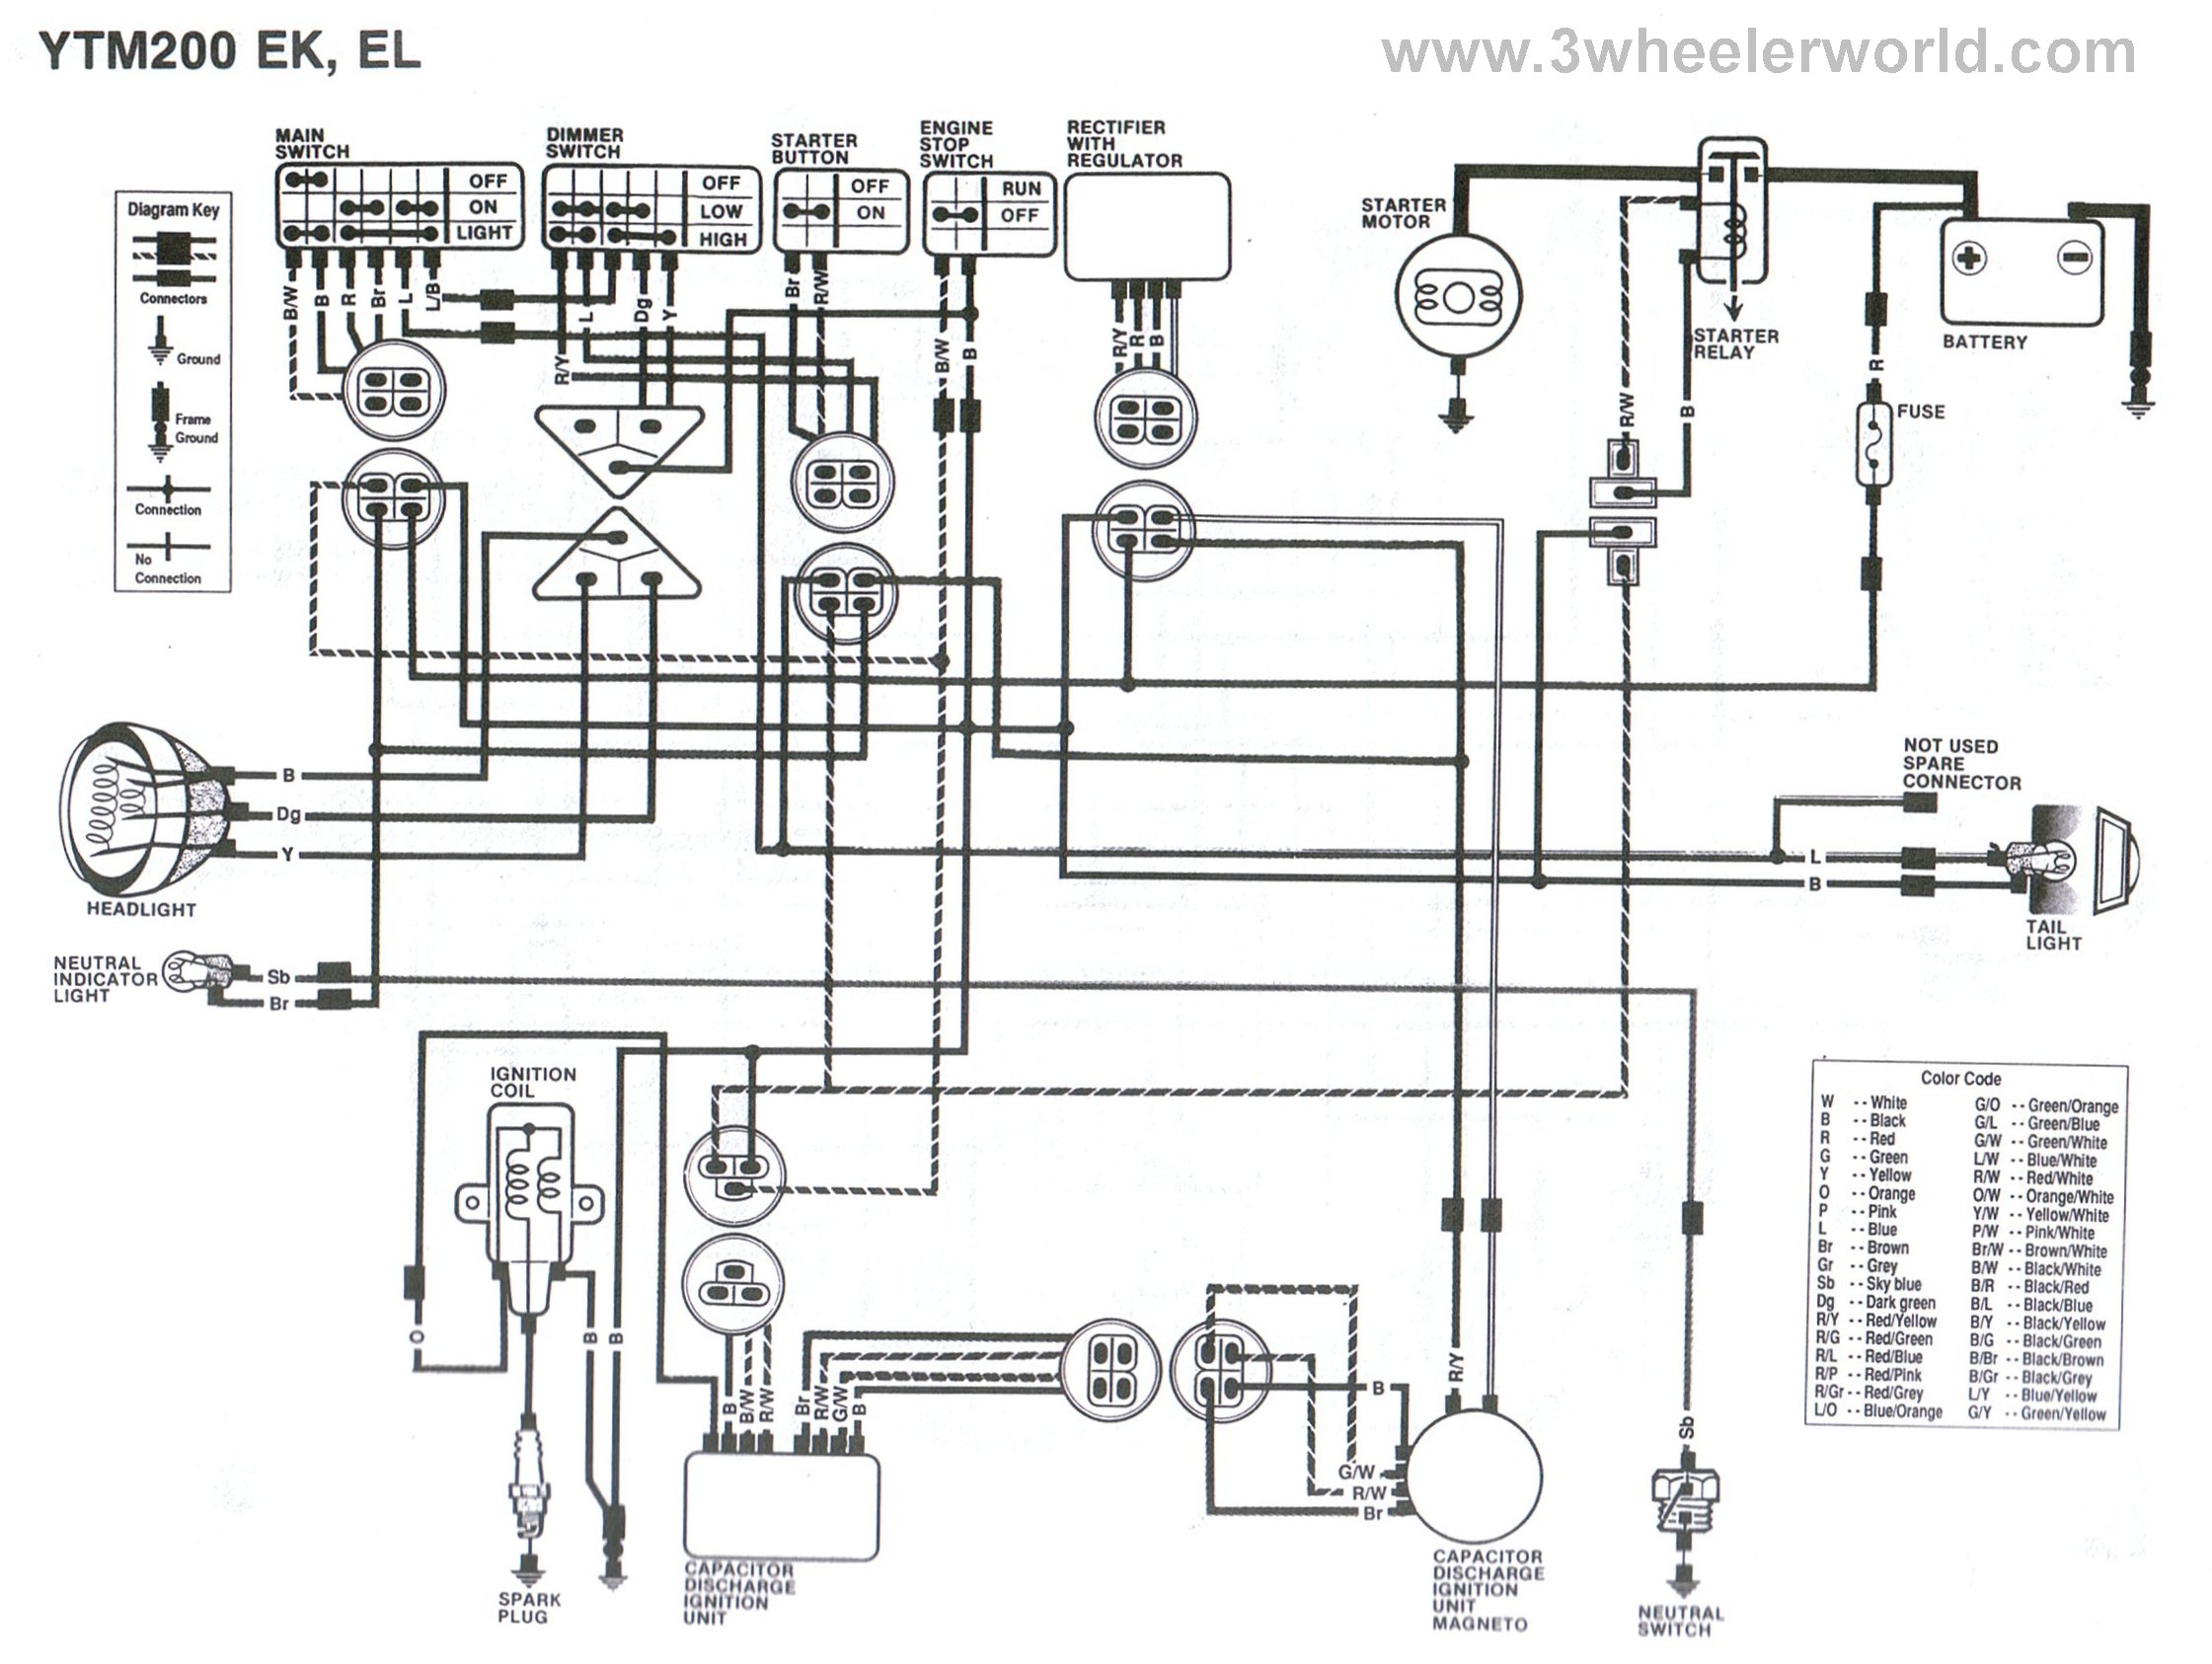 YTM200EKEL 3 wheeler world tech help yamaha wiring diagrams 1999 200 hp yamaha outboard wire harness at soozxer.org